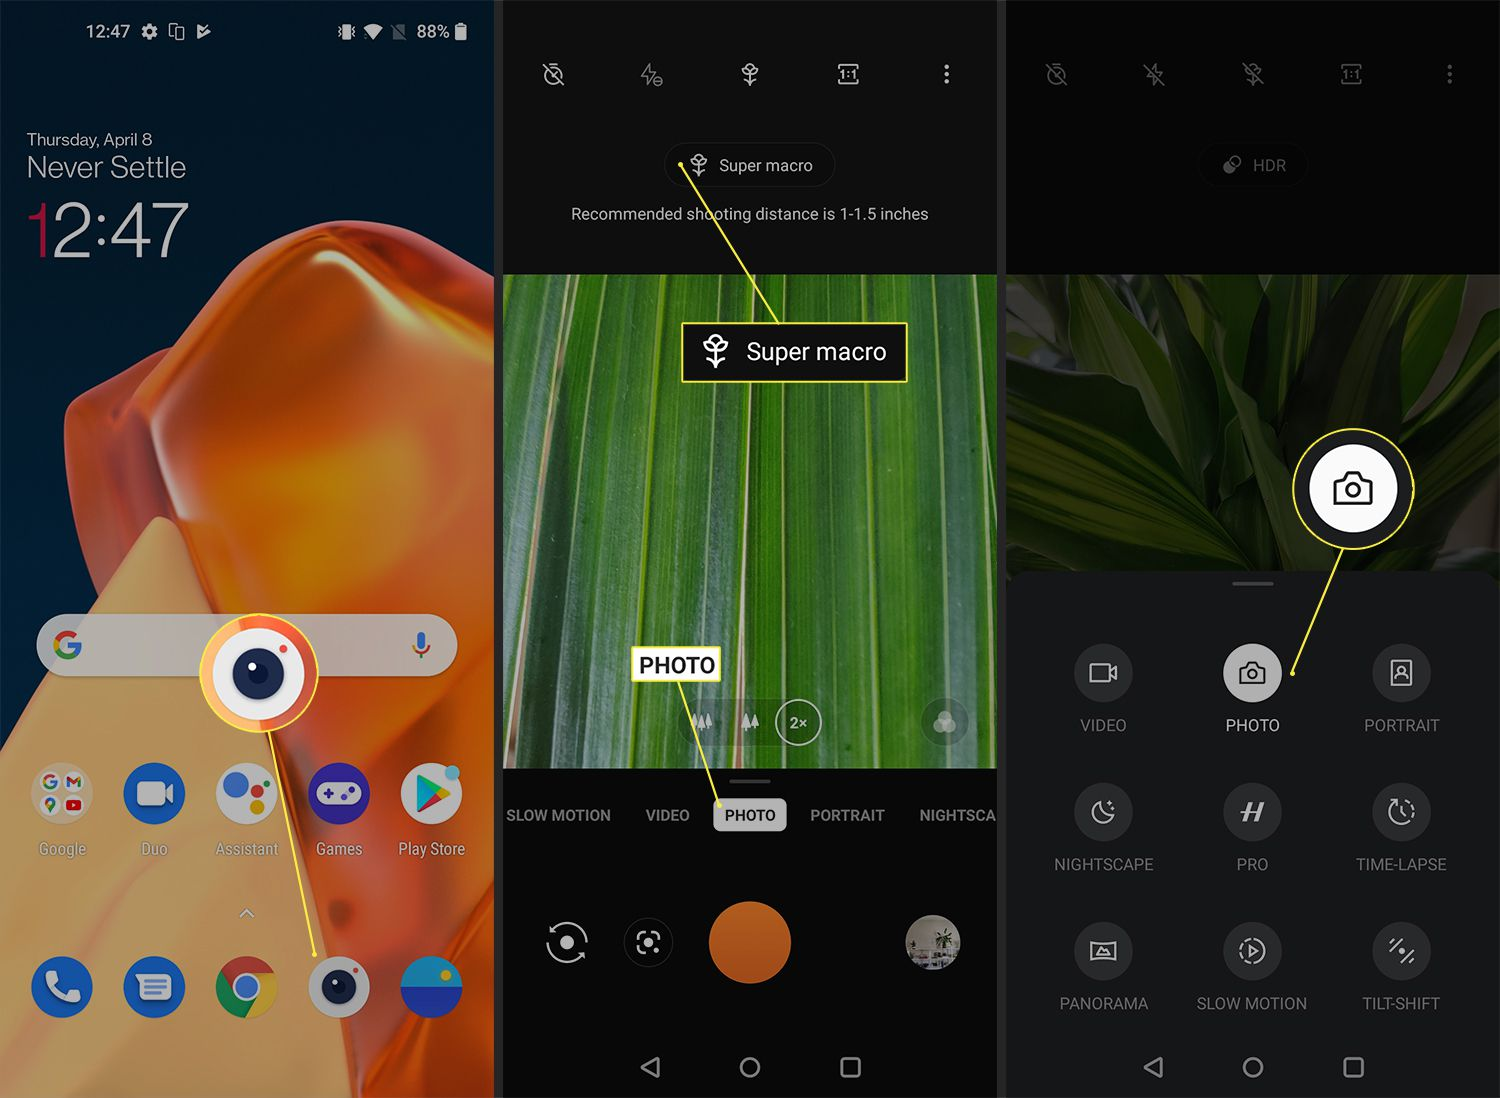 OnePlus 9 camera mode options and settings